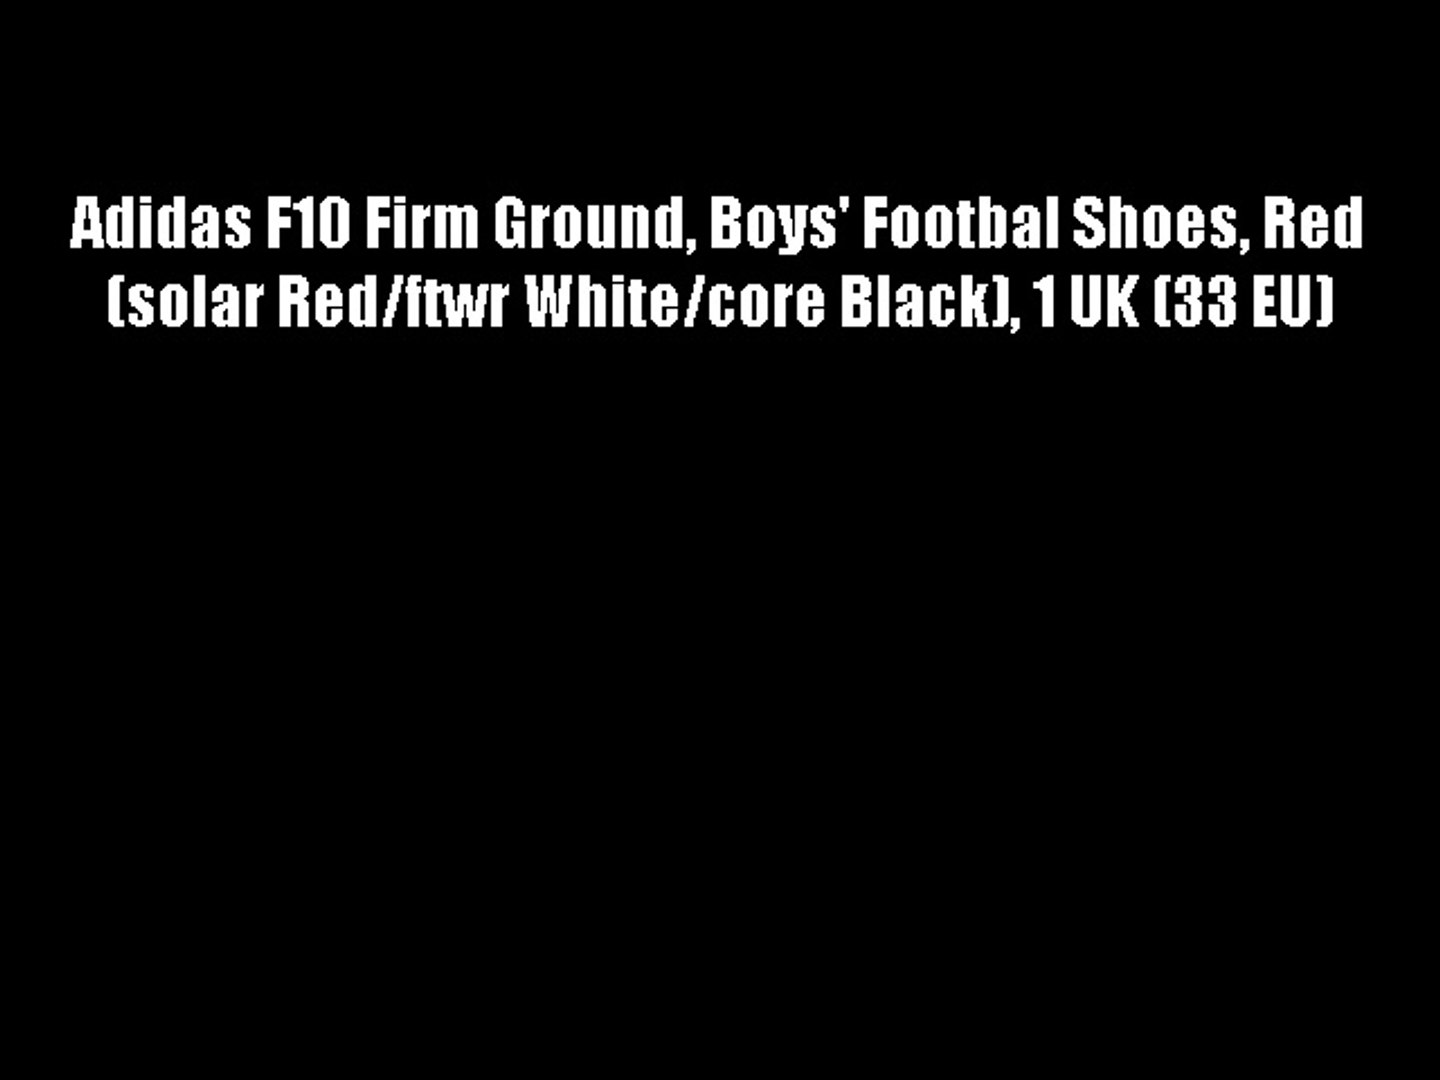 Adidas F10 Firm Ground Boys' Footbal Shoes Red (solar Red/ftwr White/core Black) 1 UK (33 EU)